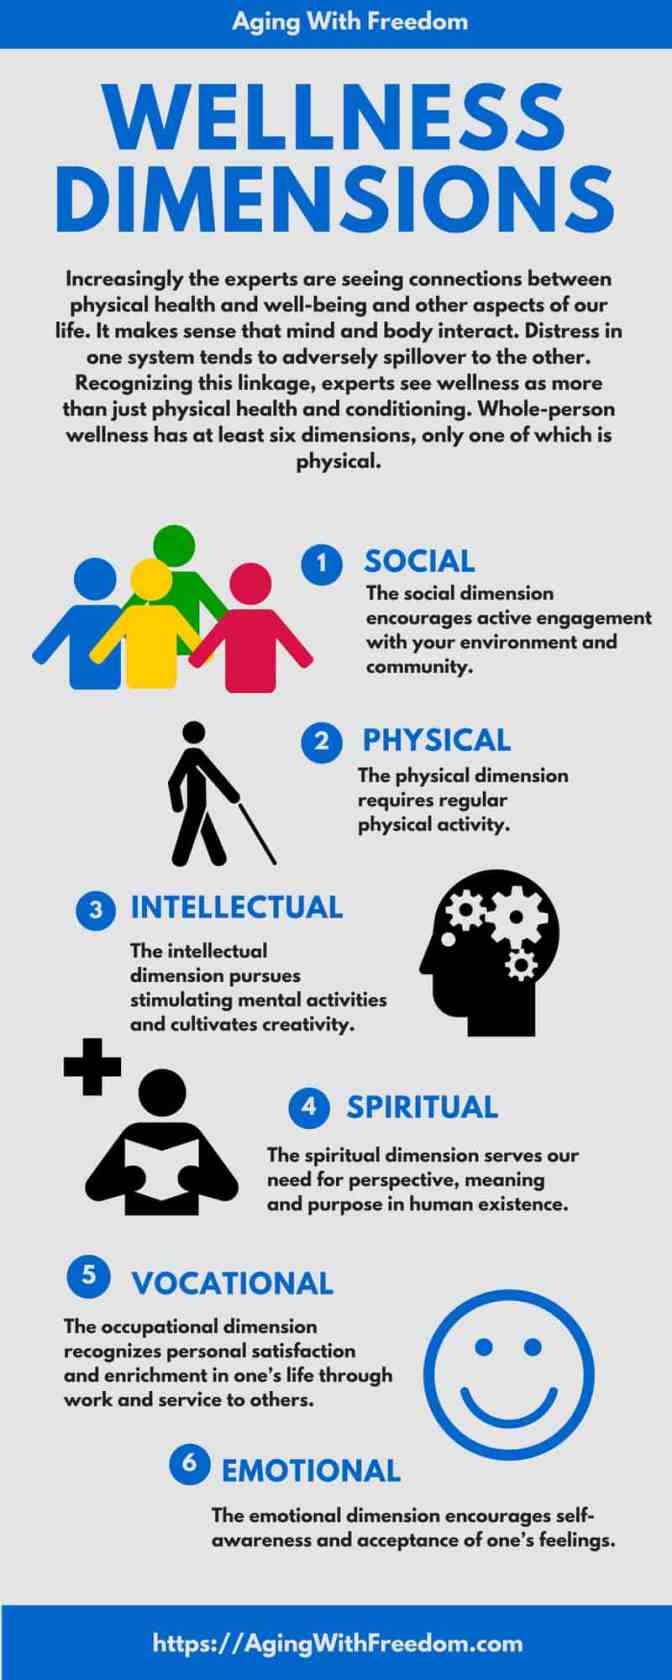 Wellness Dimensions - 6 dimensions of health and wellness